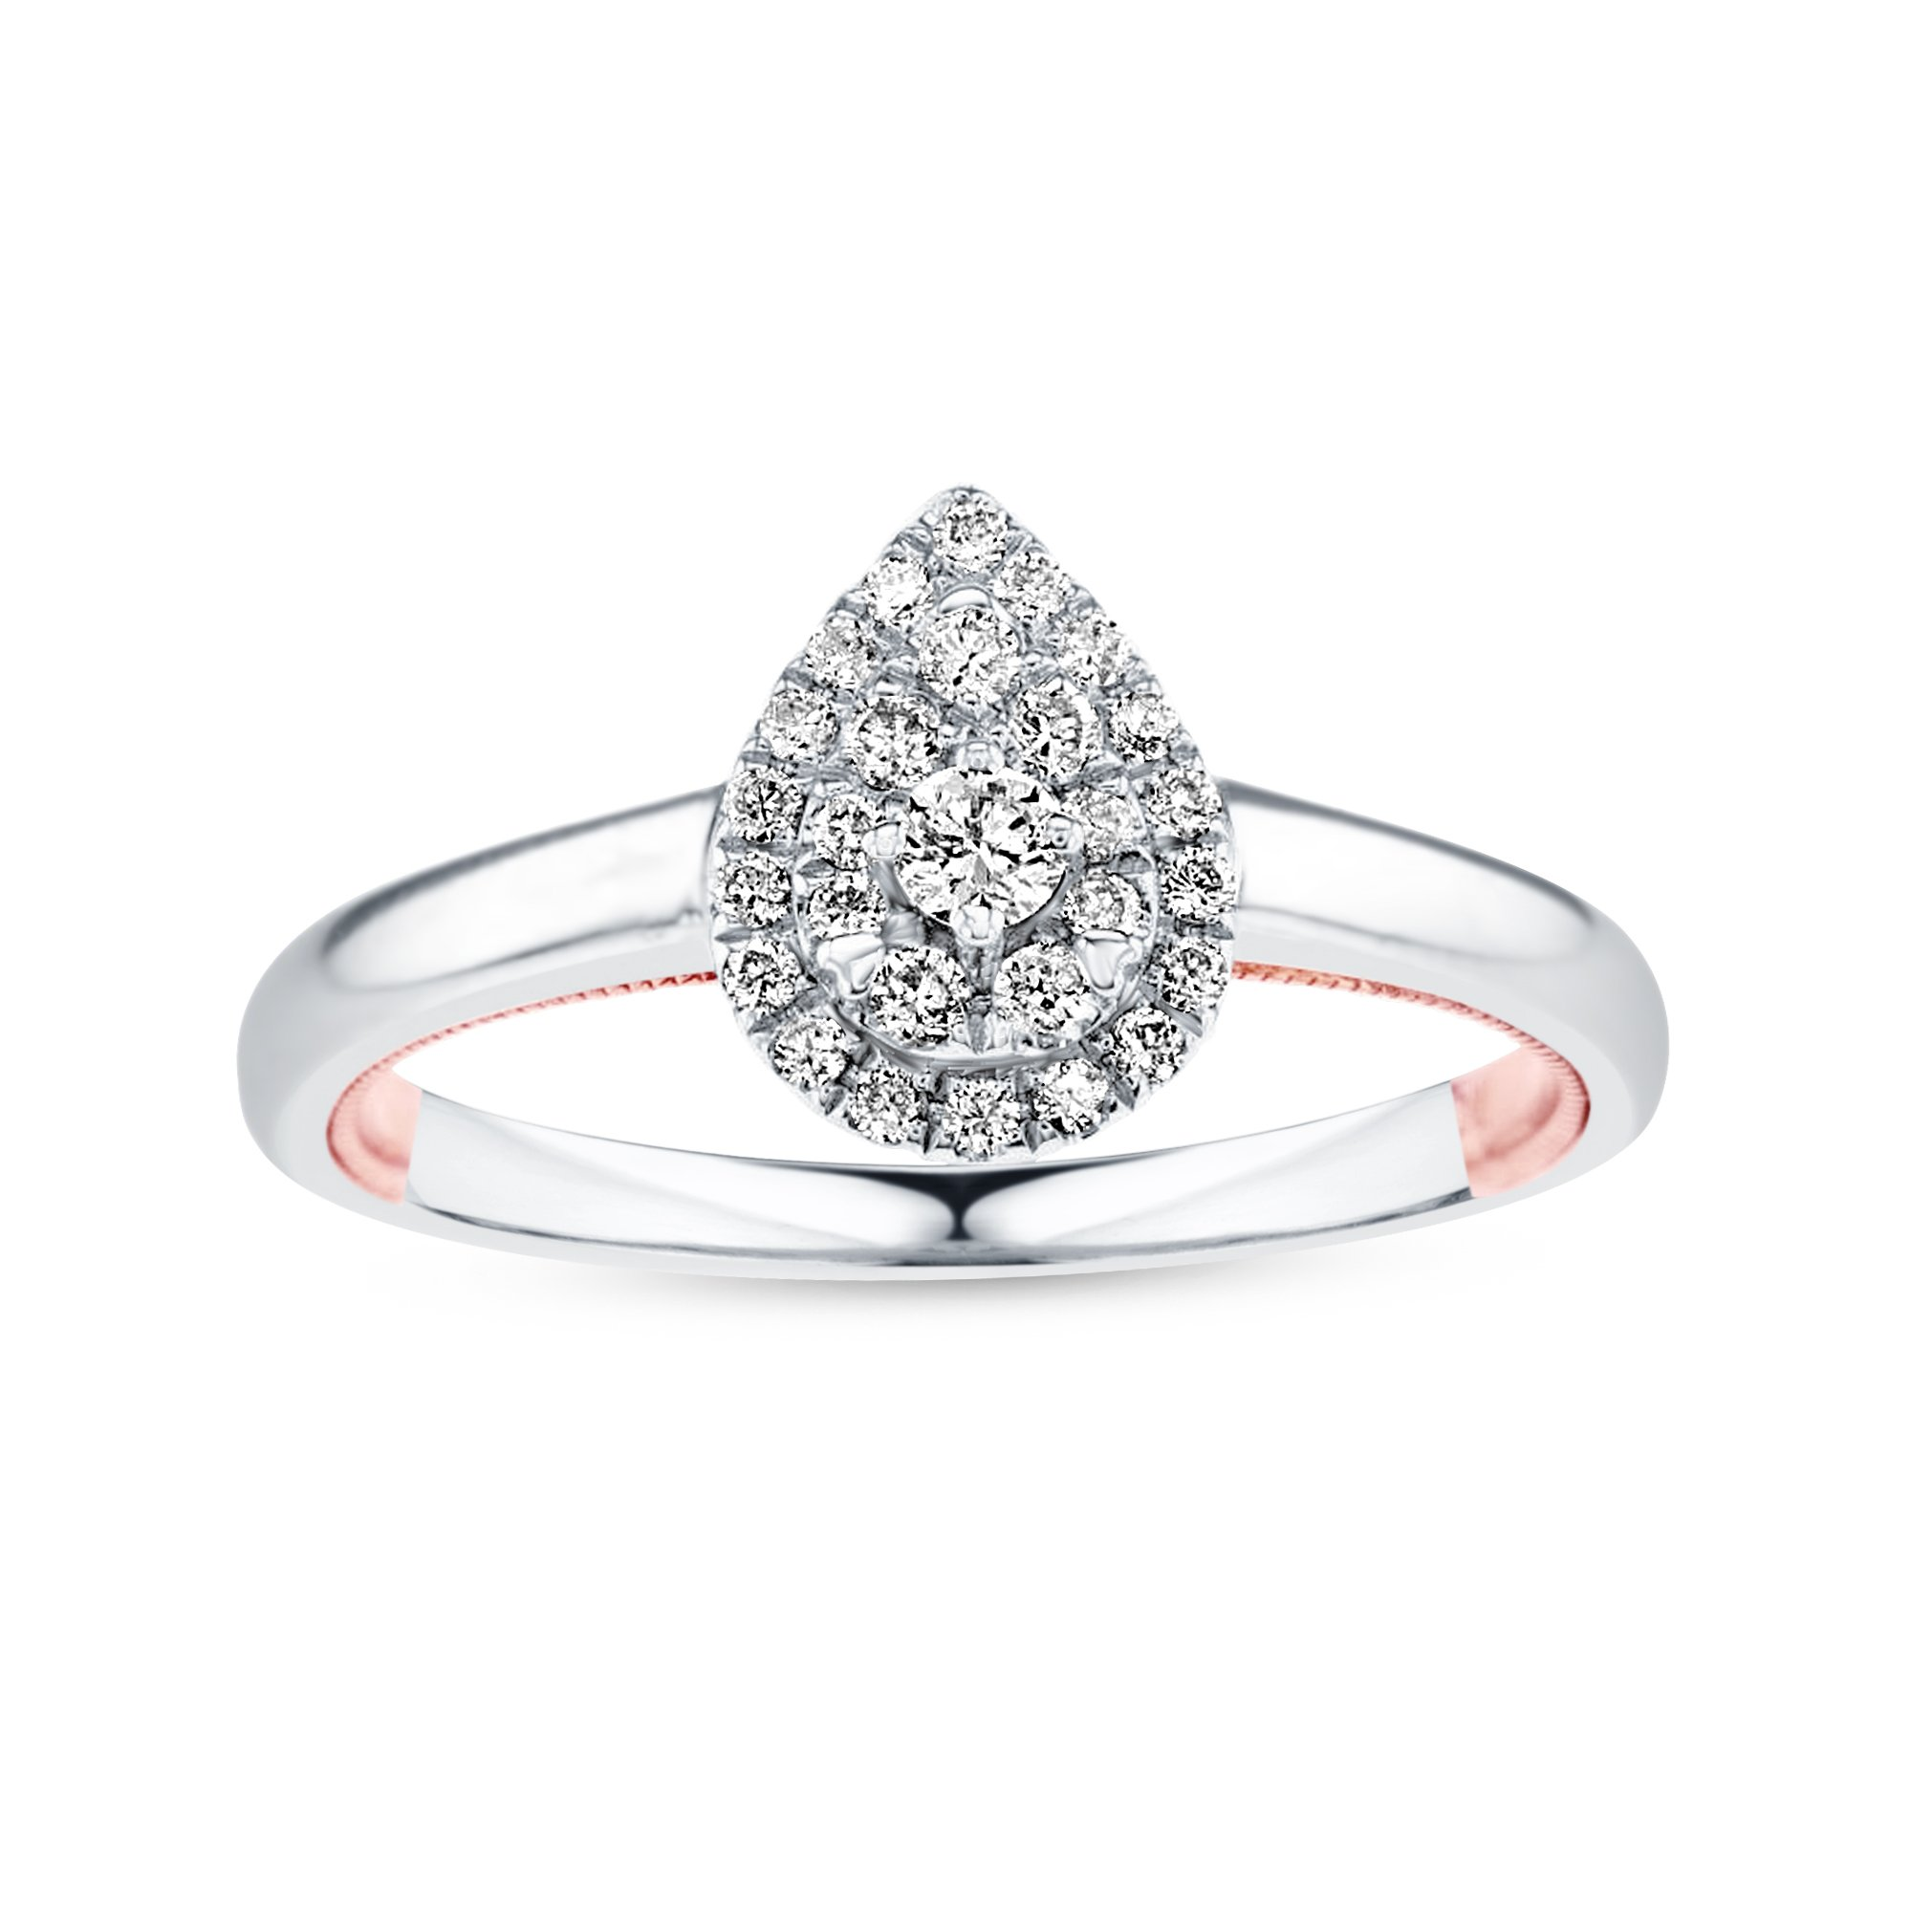 Life More Dazzling 10K White Gold Pear Shape Diamond Ring & Rose Gold Milgrain Heart (1/4CTW, I2 Clarity) by Life More Dazzling